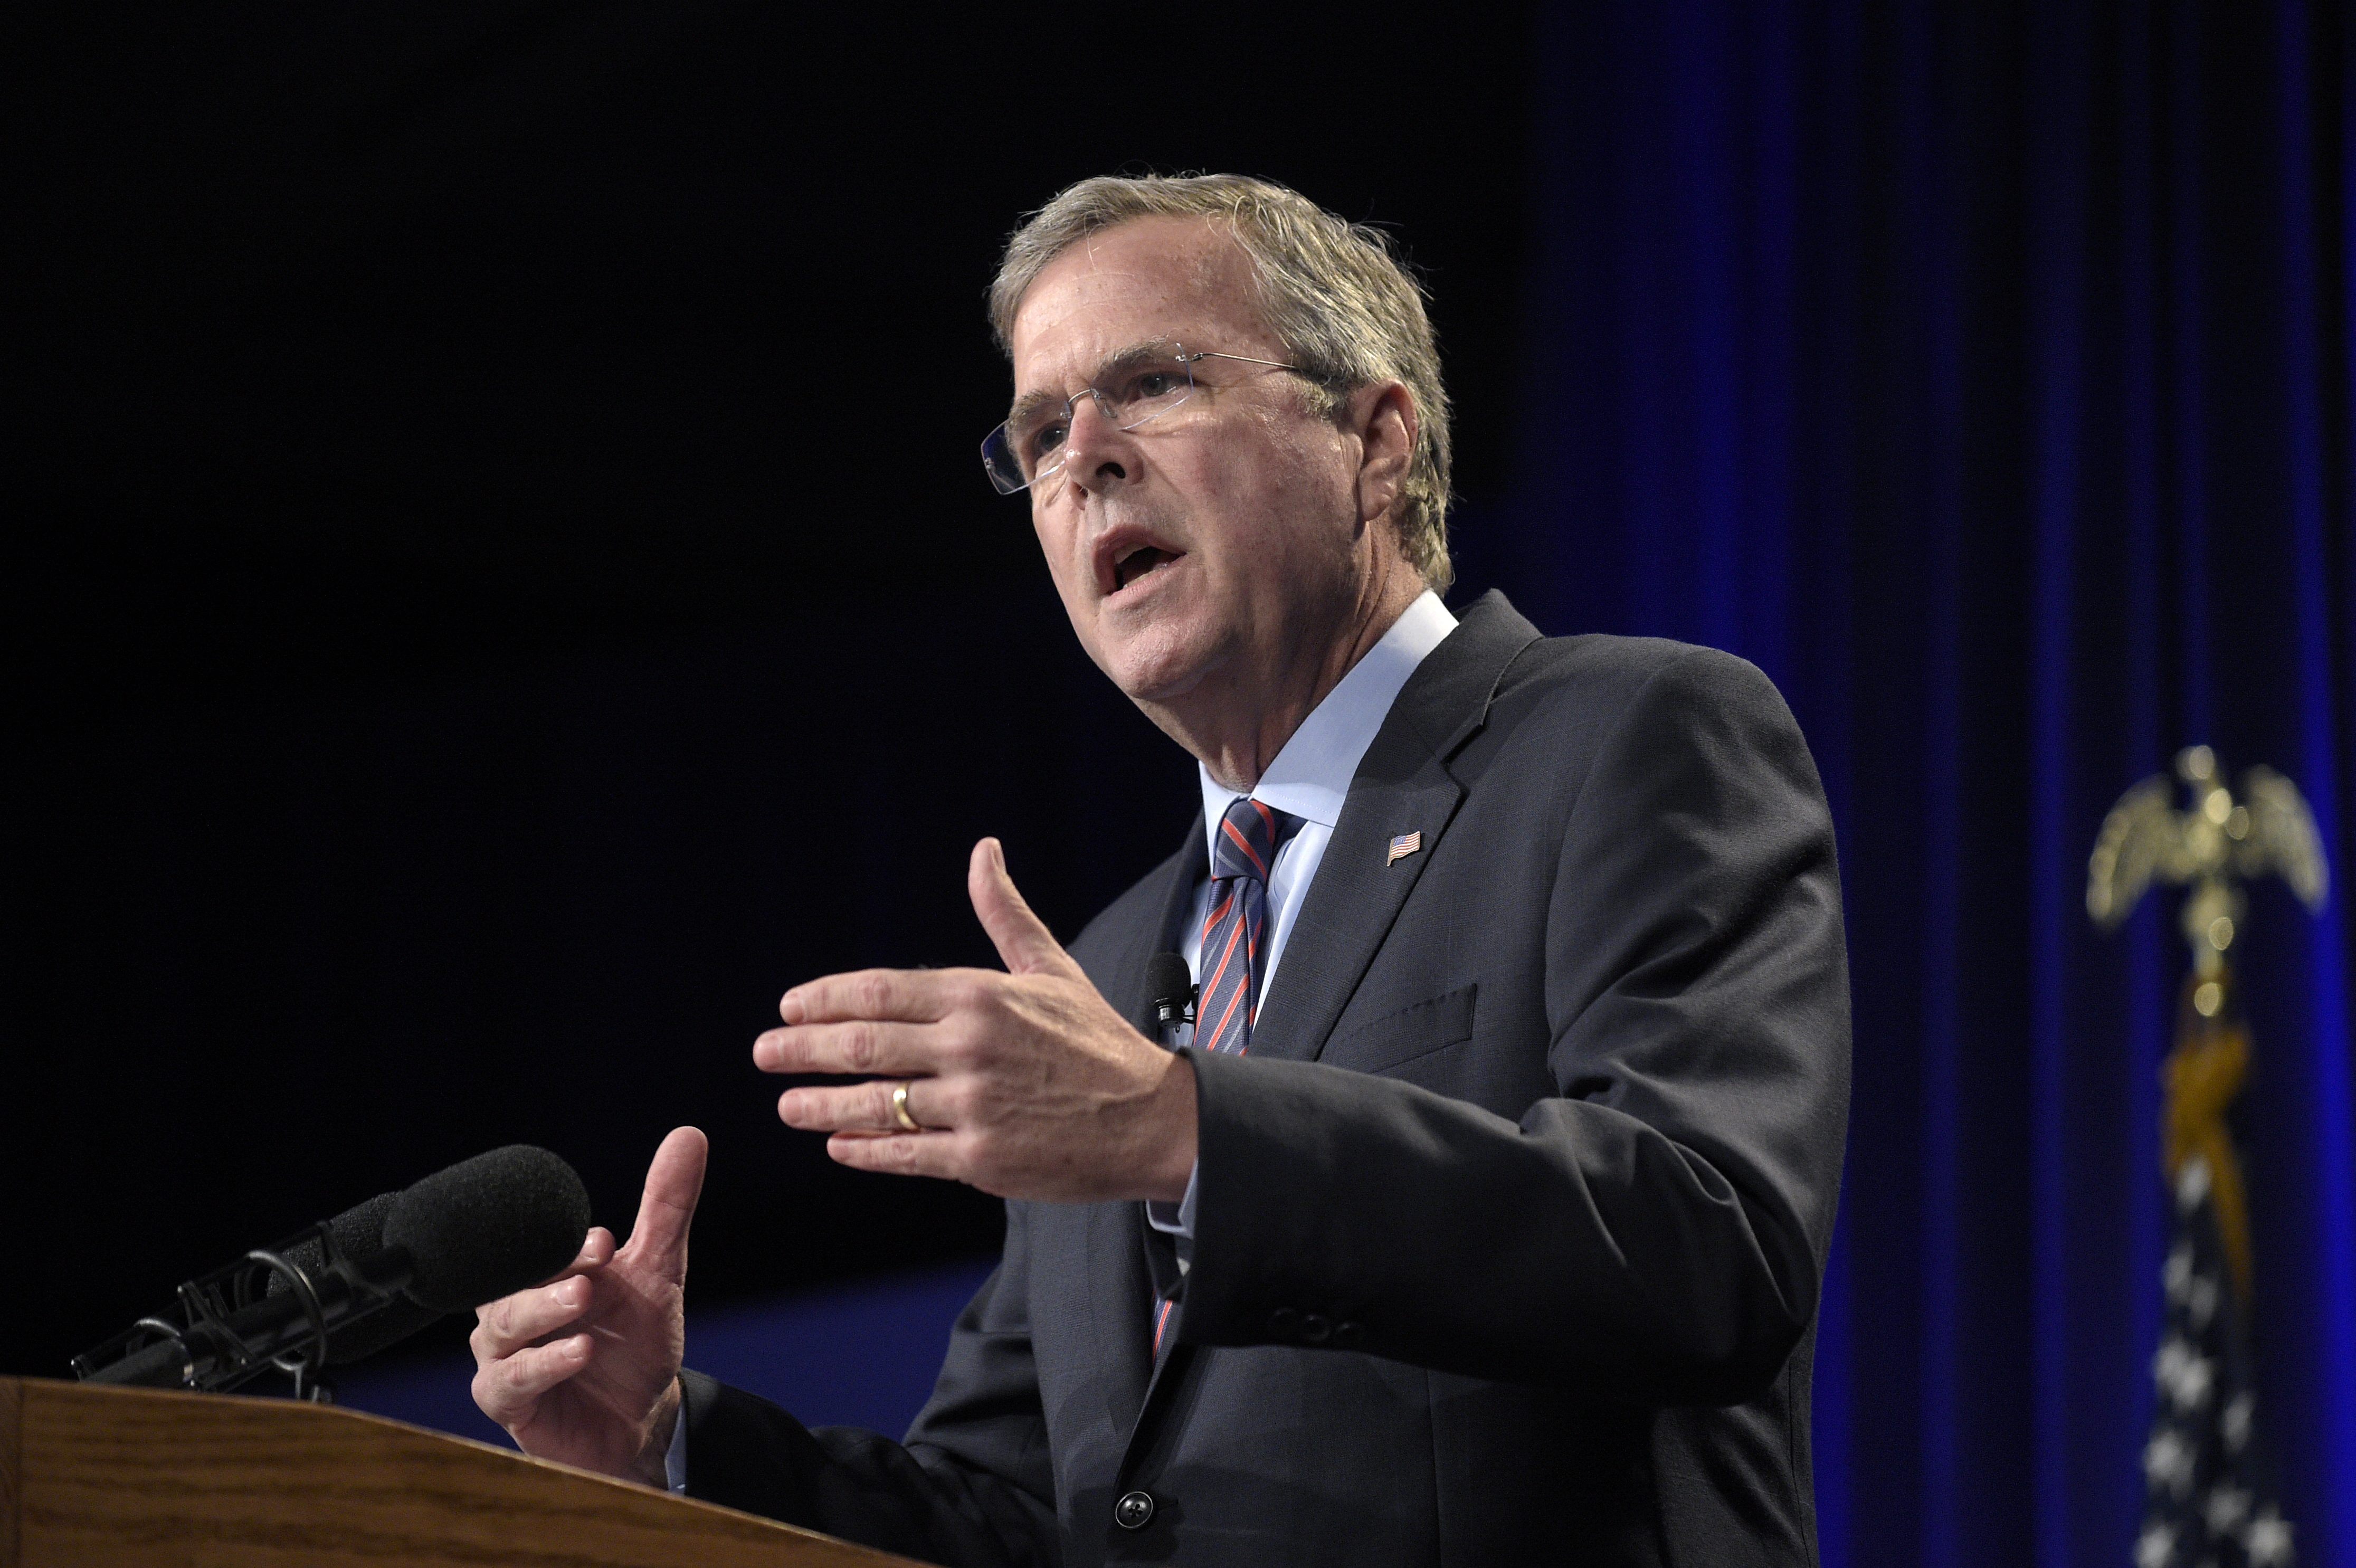 Presidential Race 2016: Bush joins crowded GOP primary